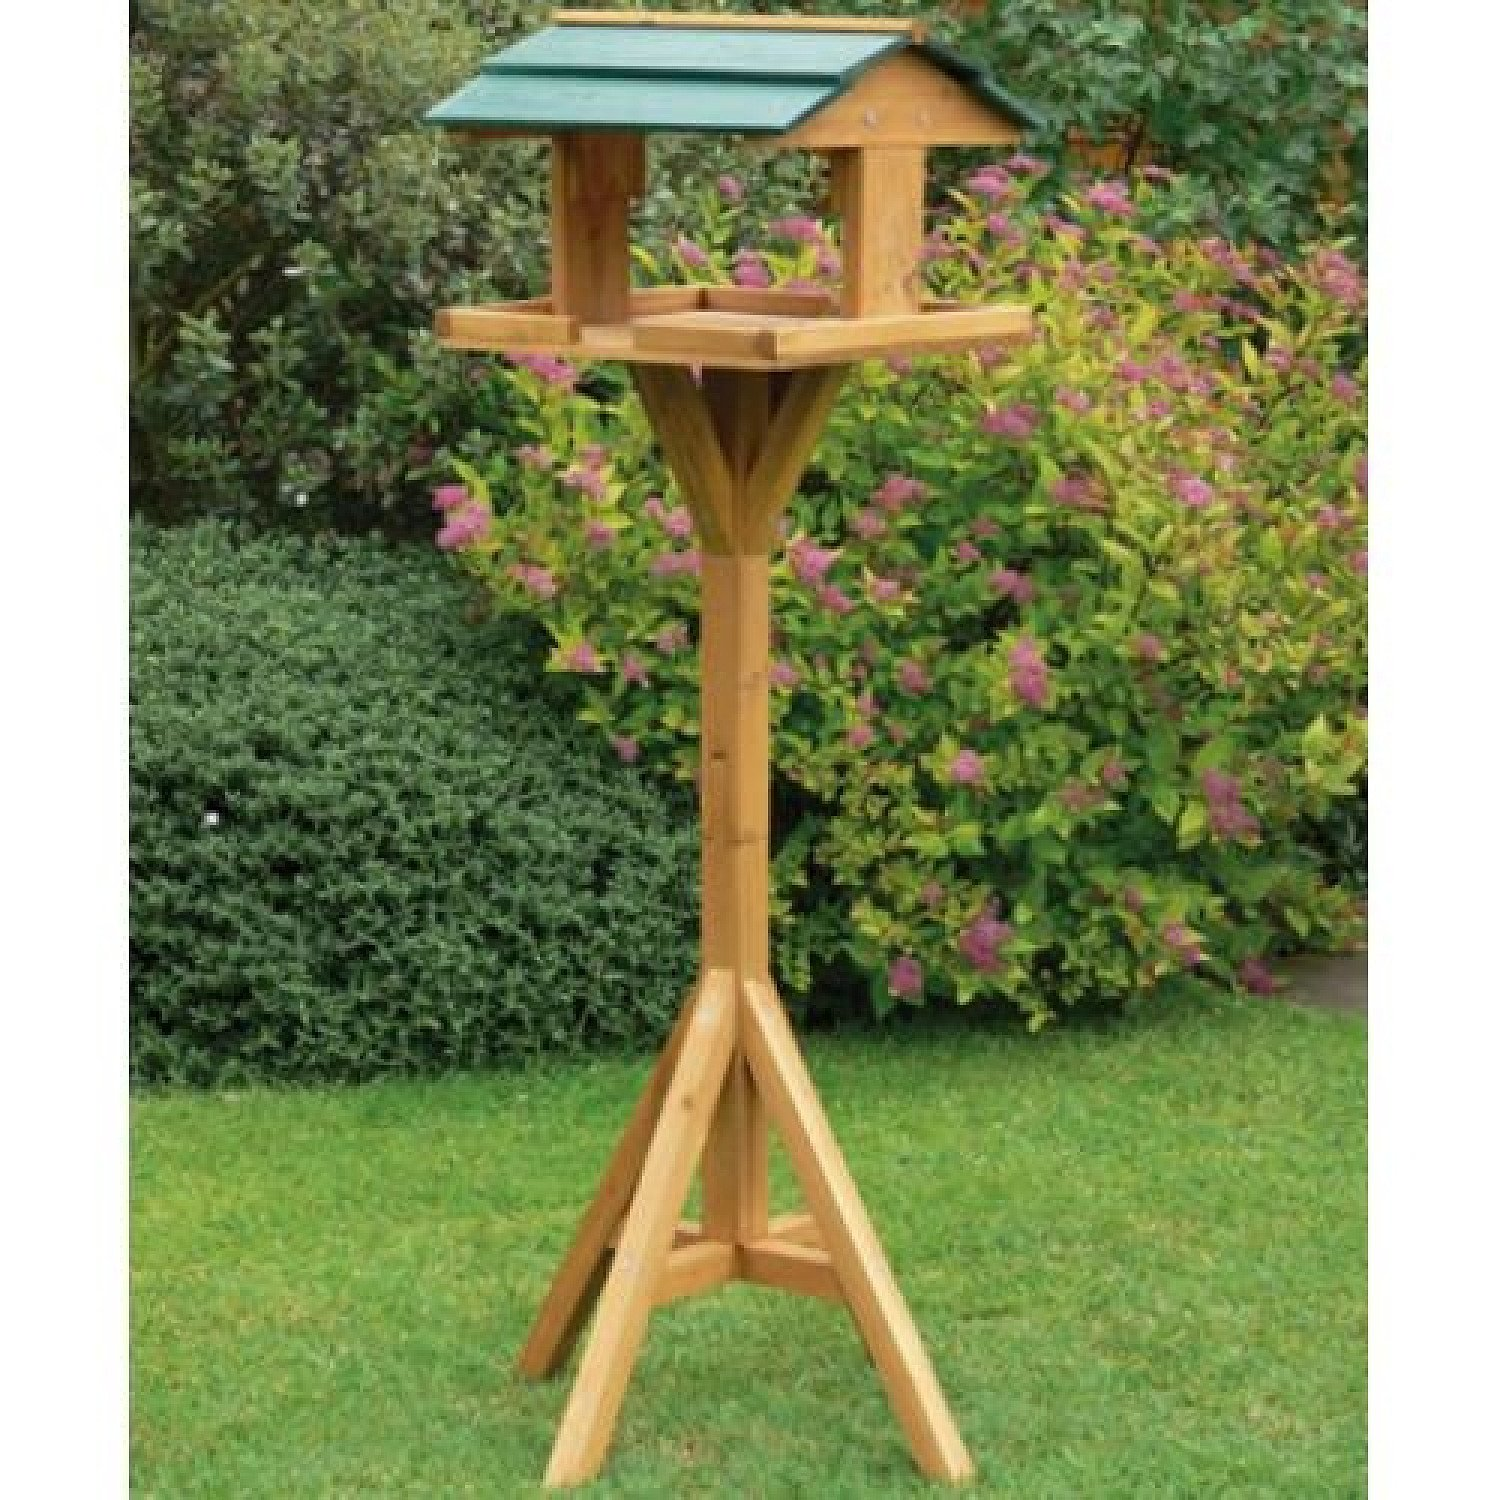 Traditional Wooden Bird Table Garden Decoration